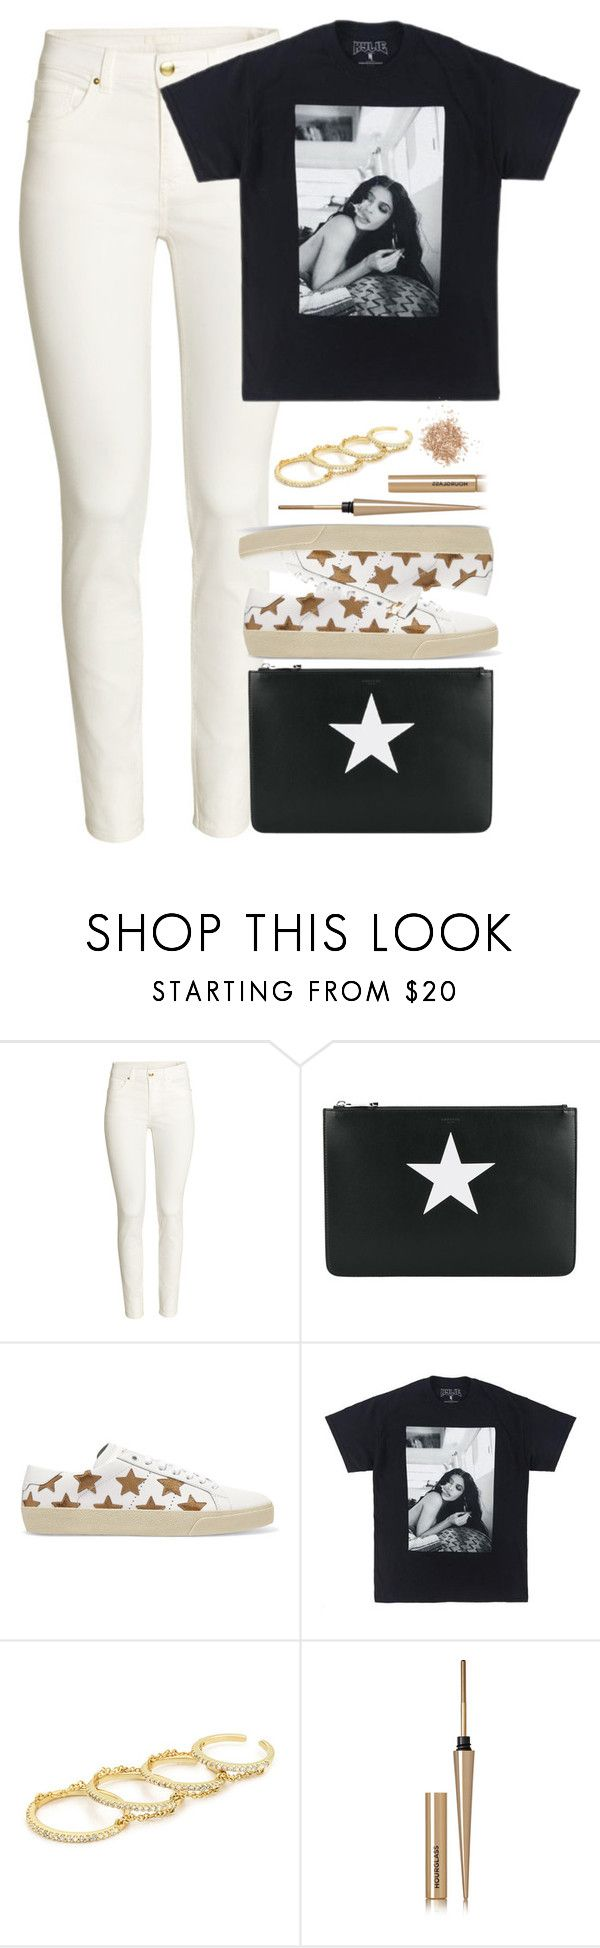 """""""Stylish Stars"""" by kydajenner on Polyvore featuring mode, H&M, Givenchy, Yves Saint Laurent, Kendall + Kylie, Fallon, Hourglass Cosmetics, Topshop en StreetStyle"""